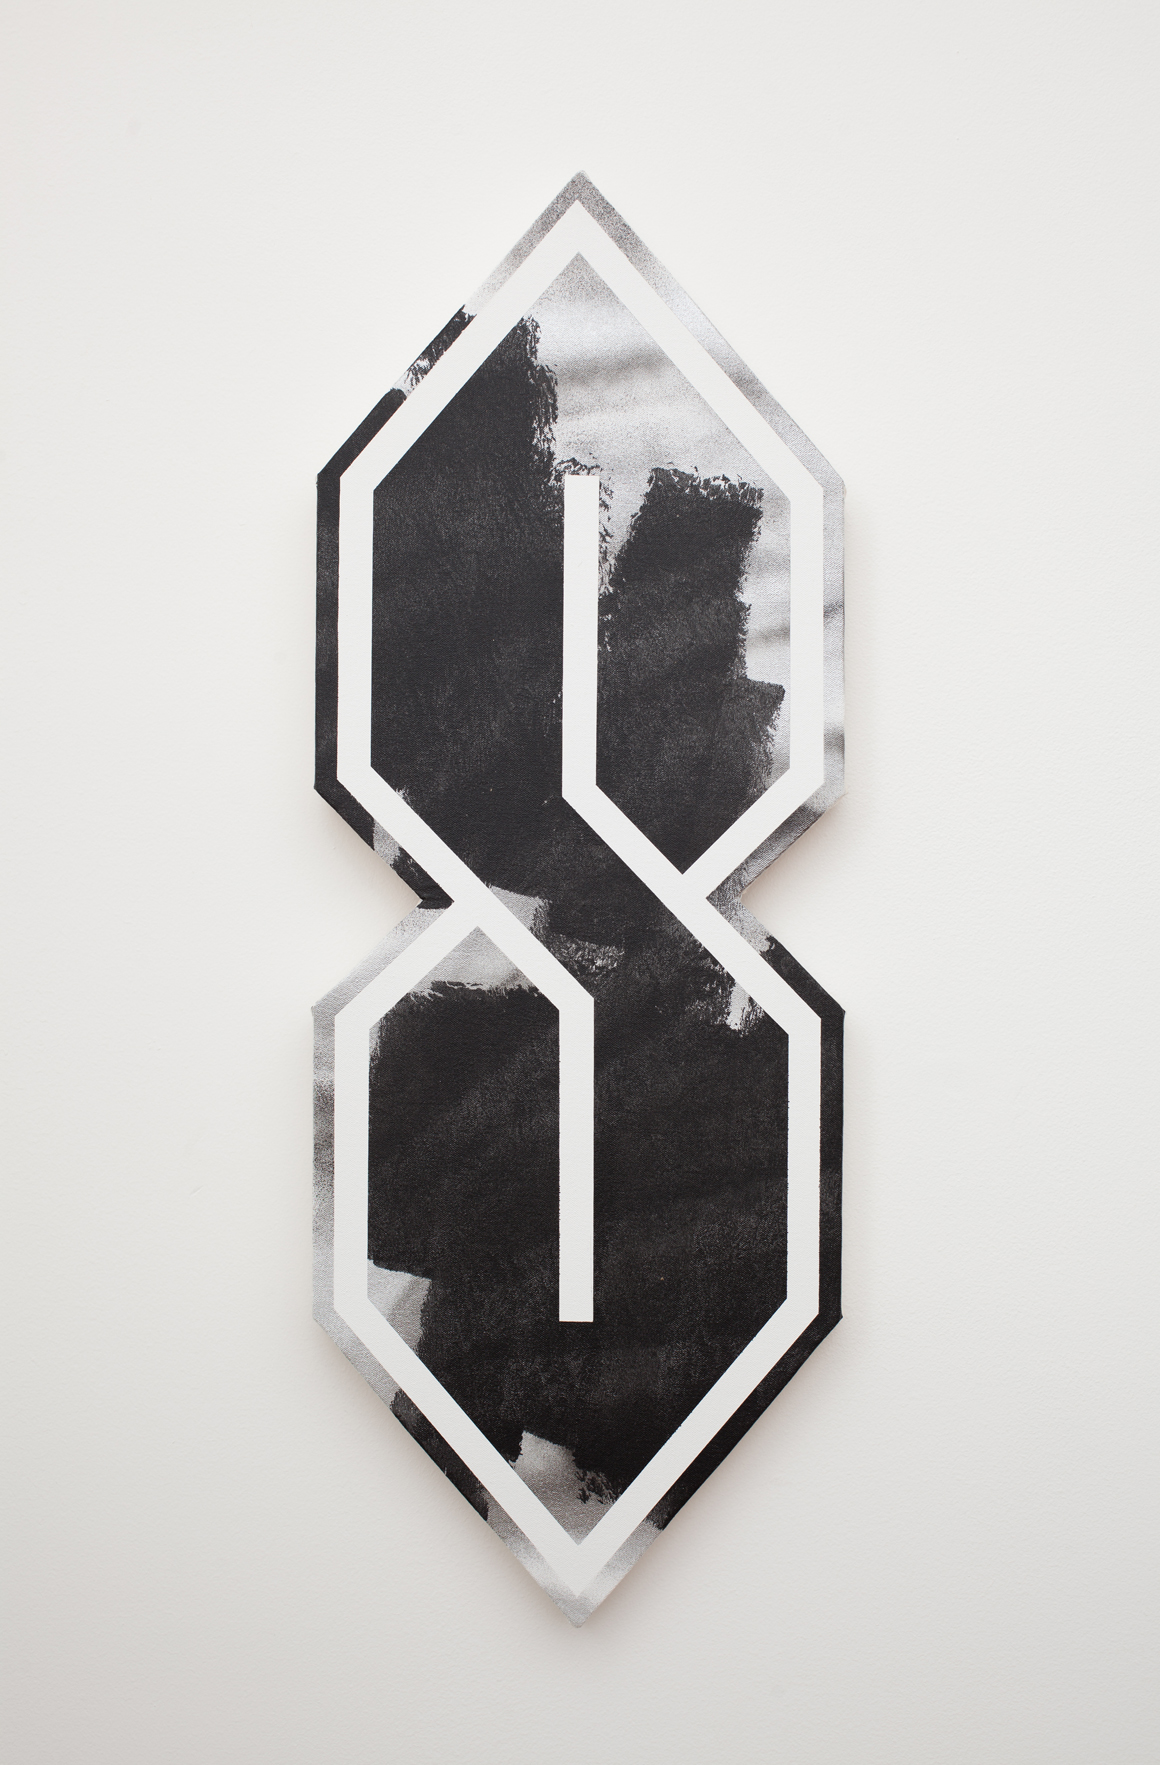 "<p><span class=""name"">Zach Reini</span><br><em>Untitled Black/Silver (S-Thing)</em><span class='media'>Latex and spray enamel on canvas on panel</span>33 x 12 in (83.8 x 30.5 cm)<br>2015<br><a class='inquire' href='mailto:info@gildargallery.com?subject=Artwork Inquiry ZREI0025&body=I am interested in finding out more about Untitled Black/Silver (S-Thing) by Zach Reini'>Inquire</a></p>"